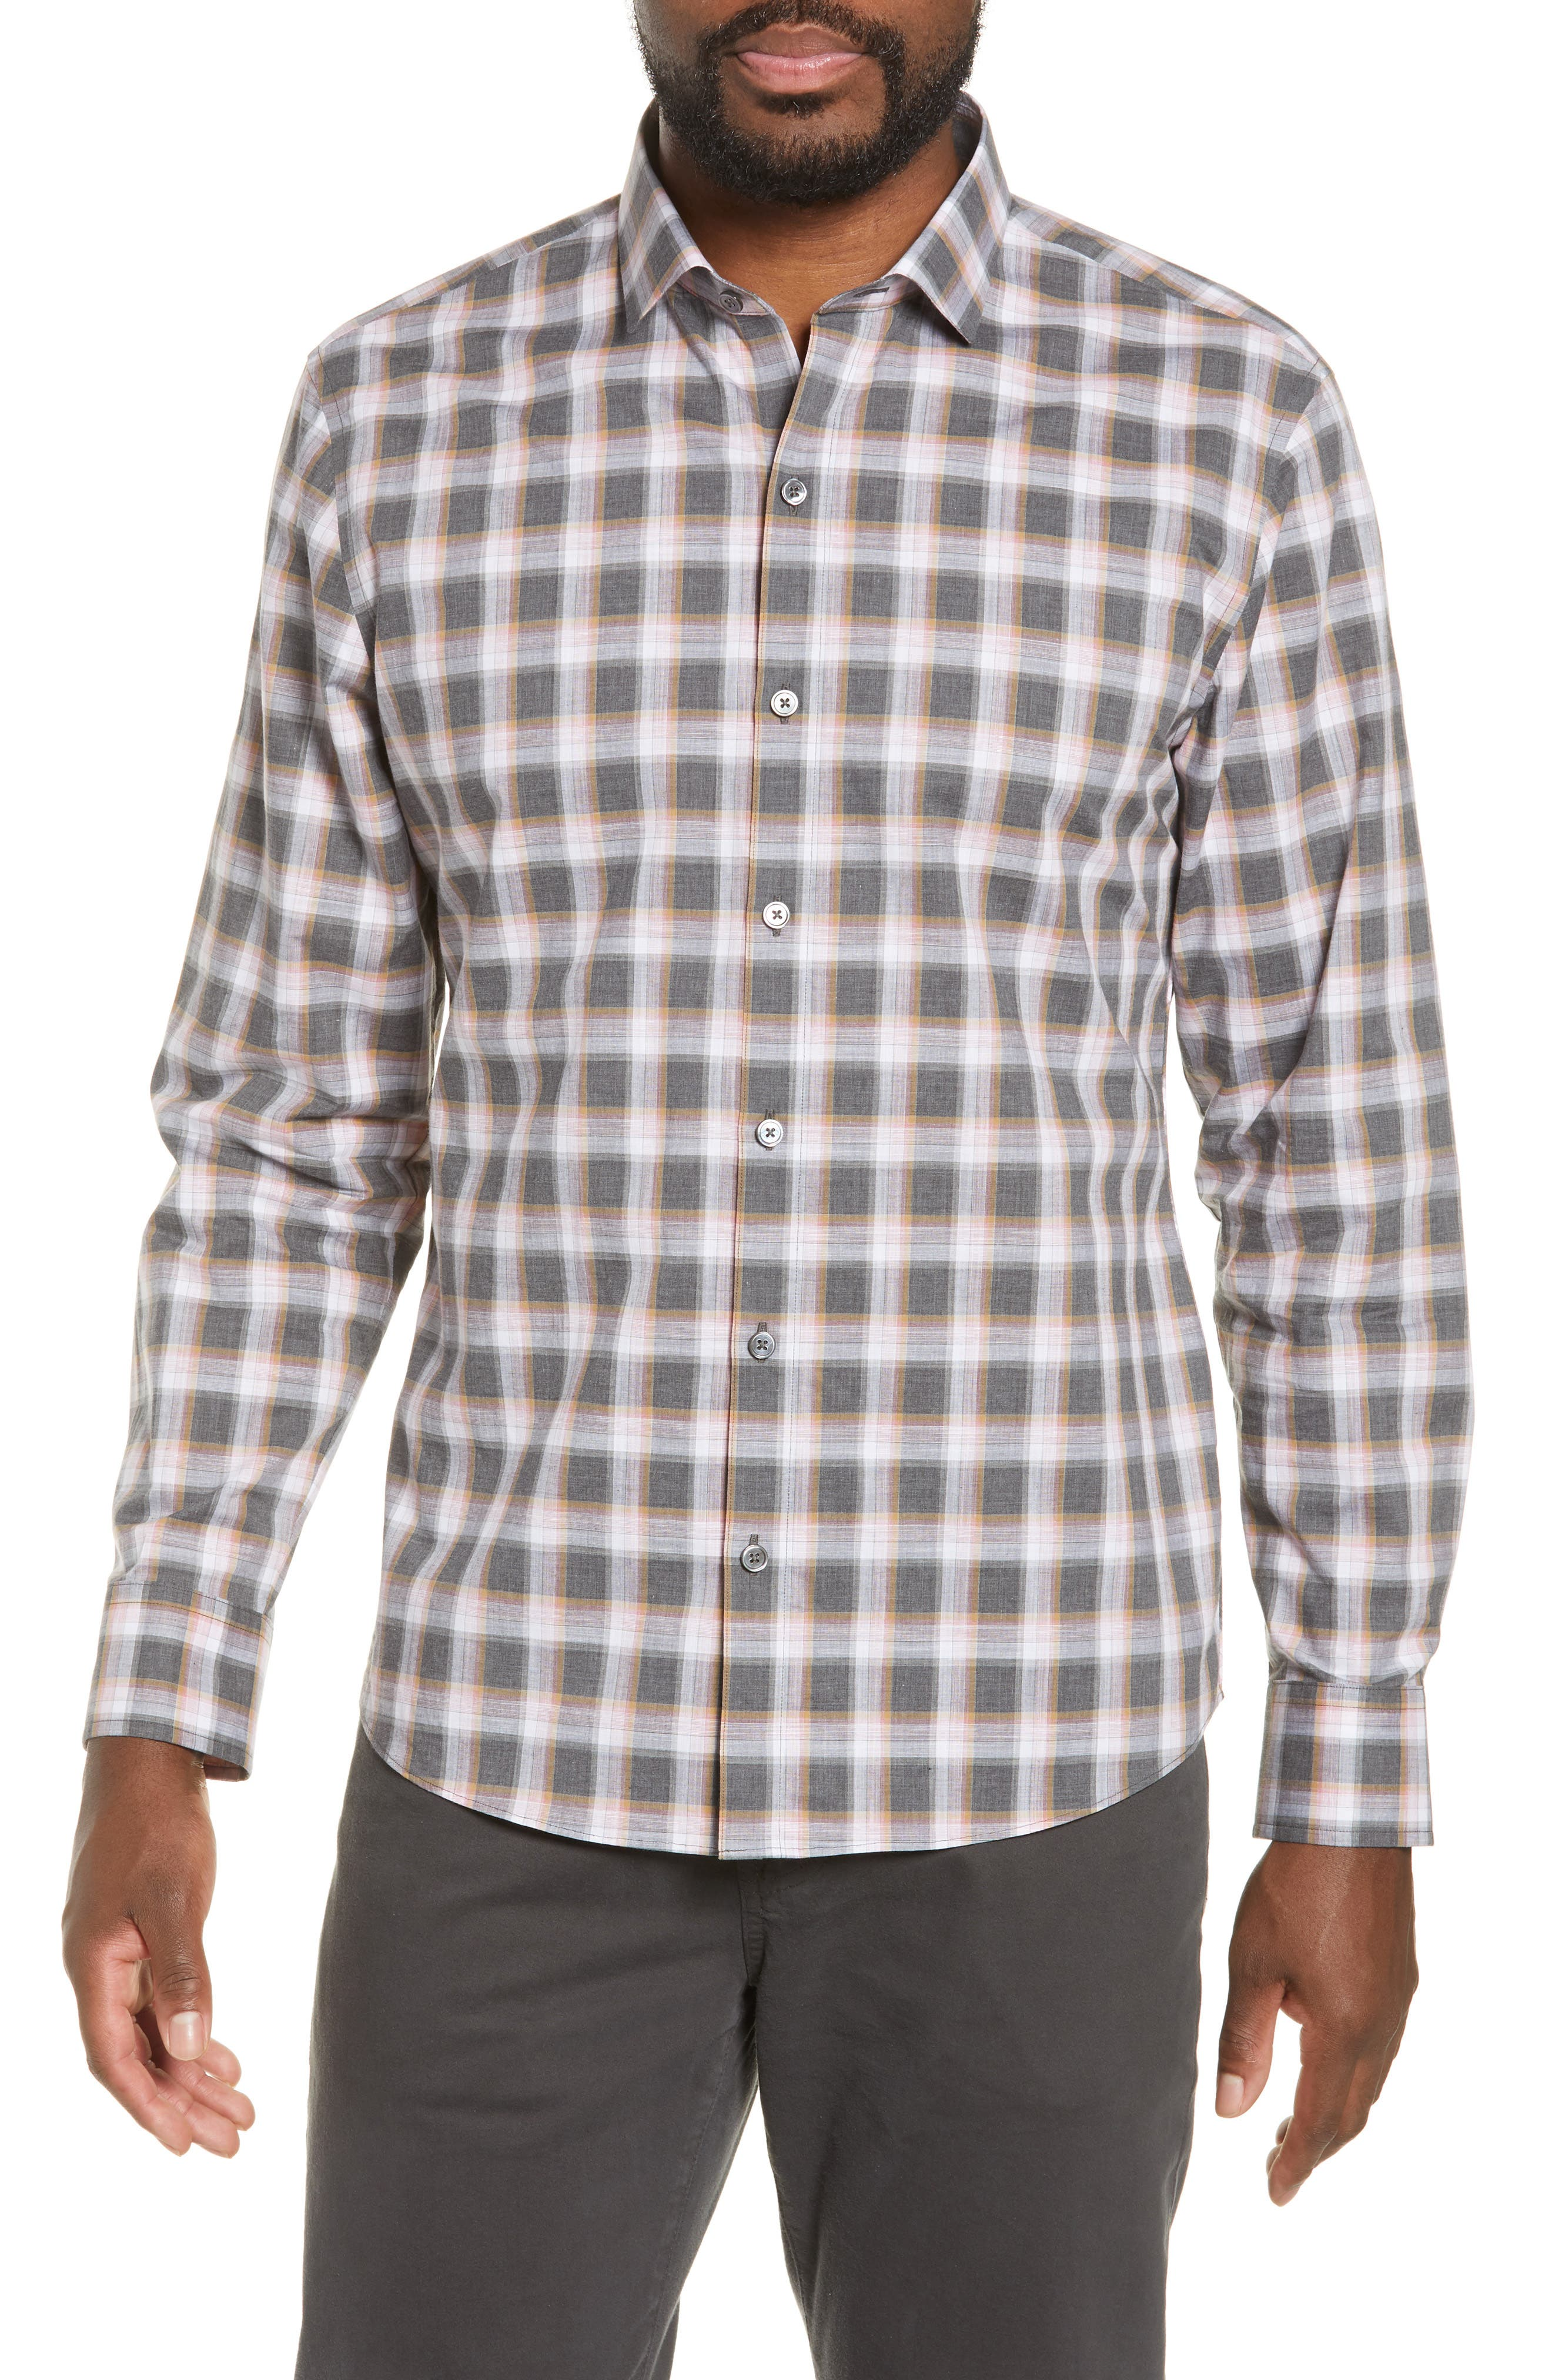 ZACHARY PRELL, Pagatpatan Regular Fit Plaid Sport Shirt, Main thumbnail 1, color, GREY